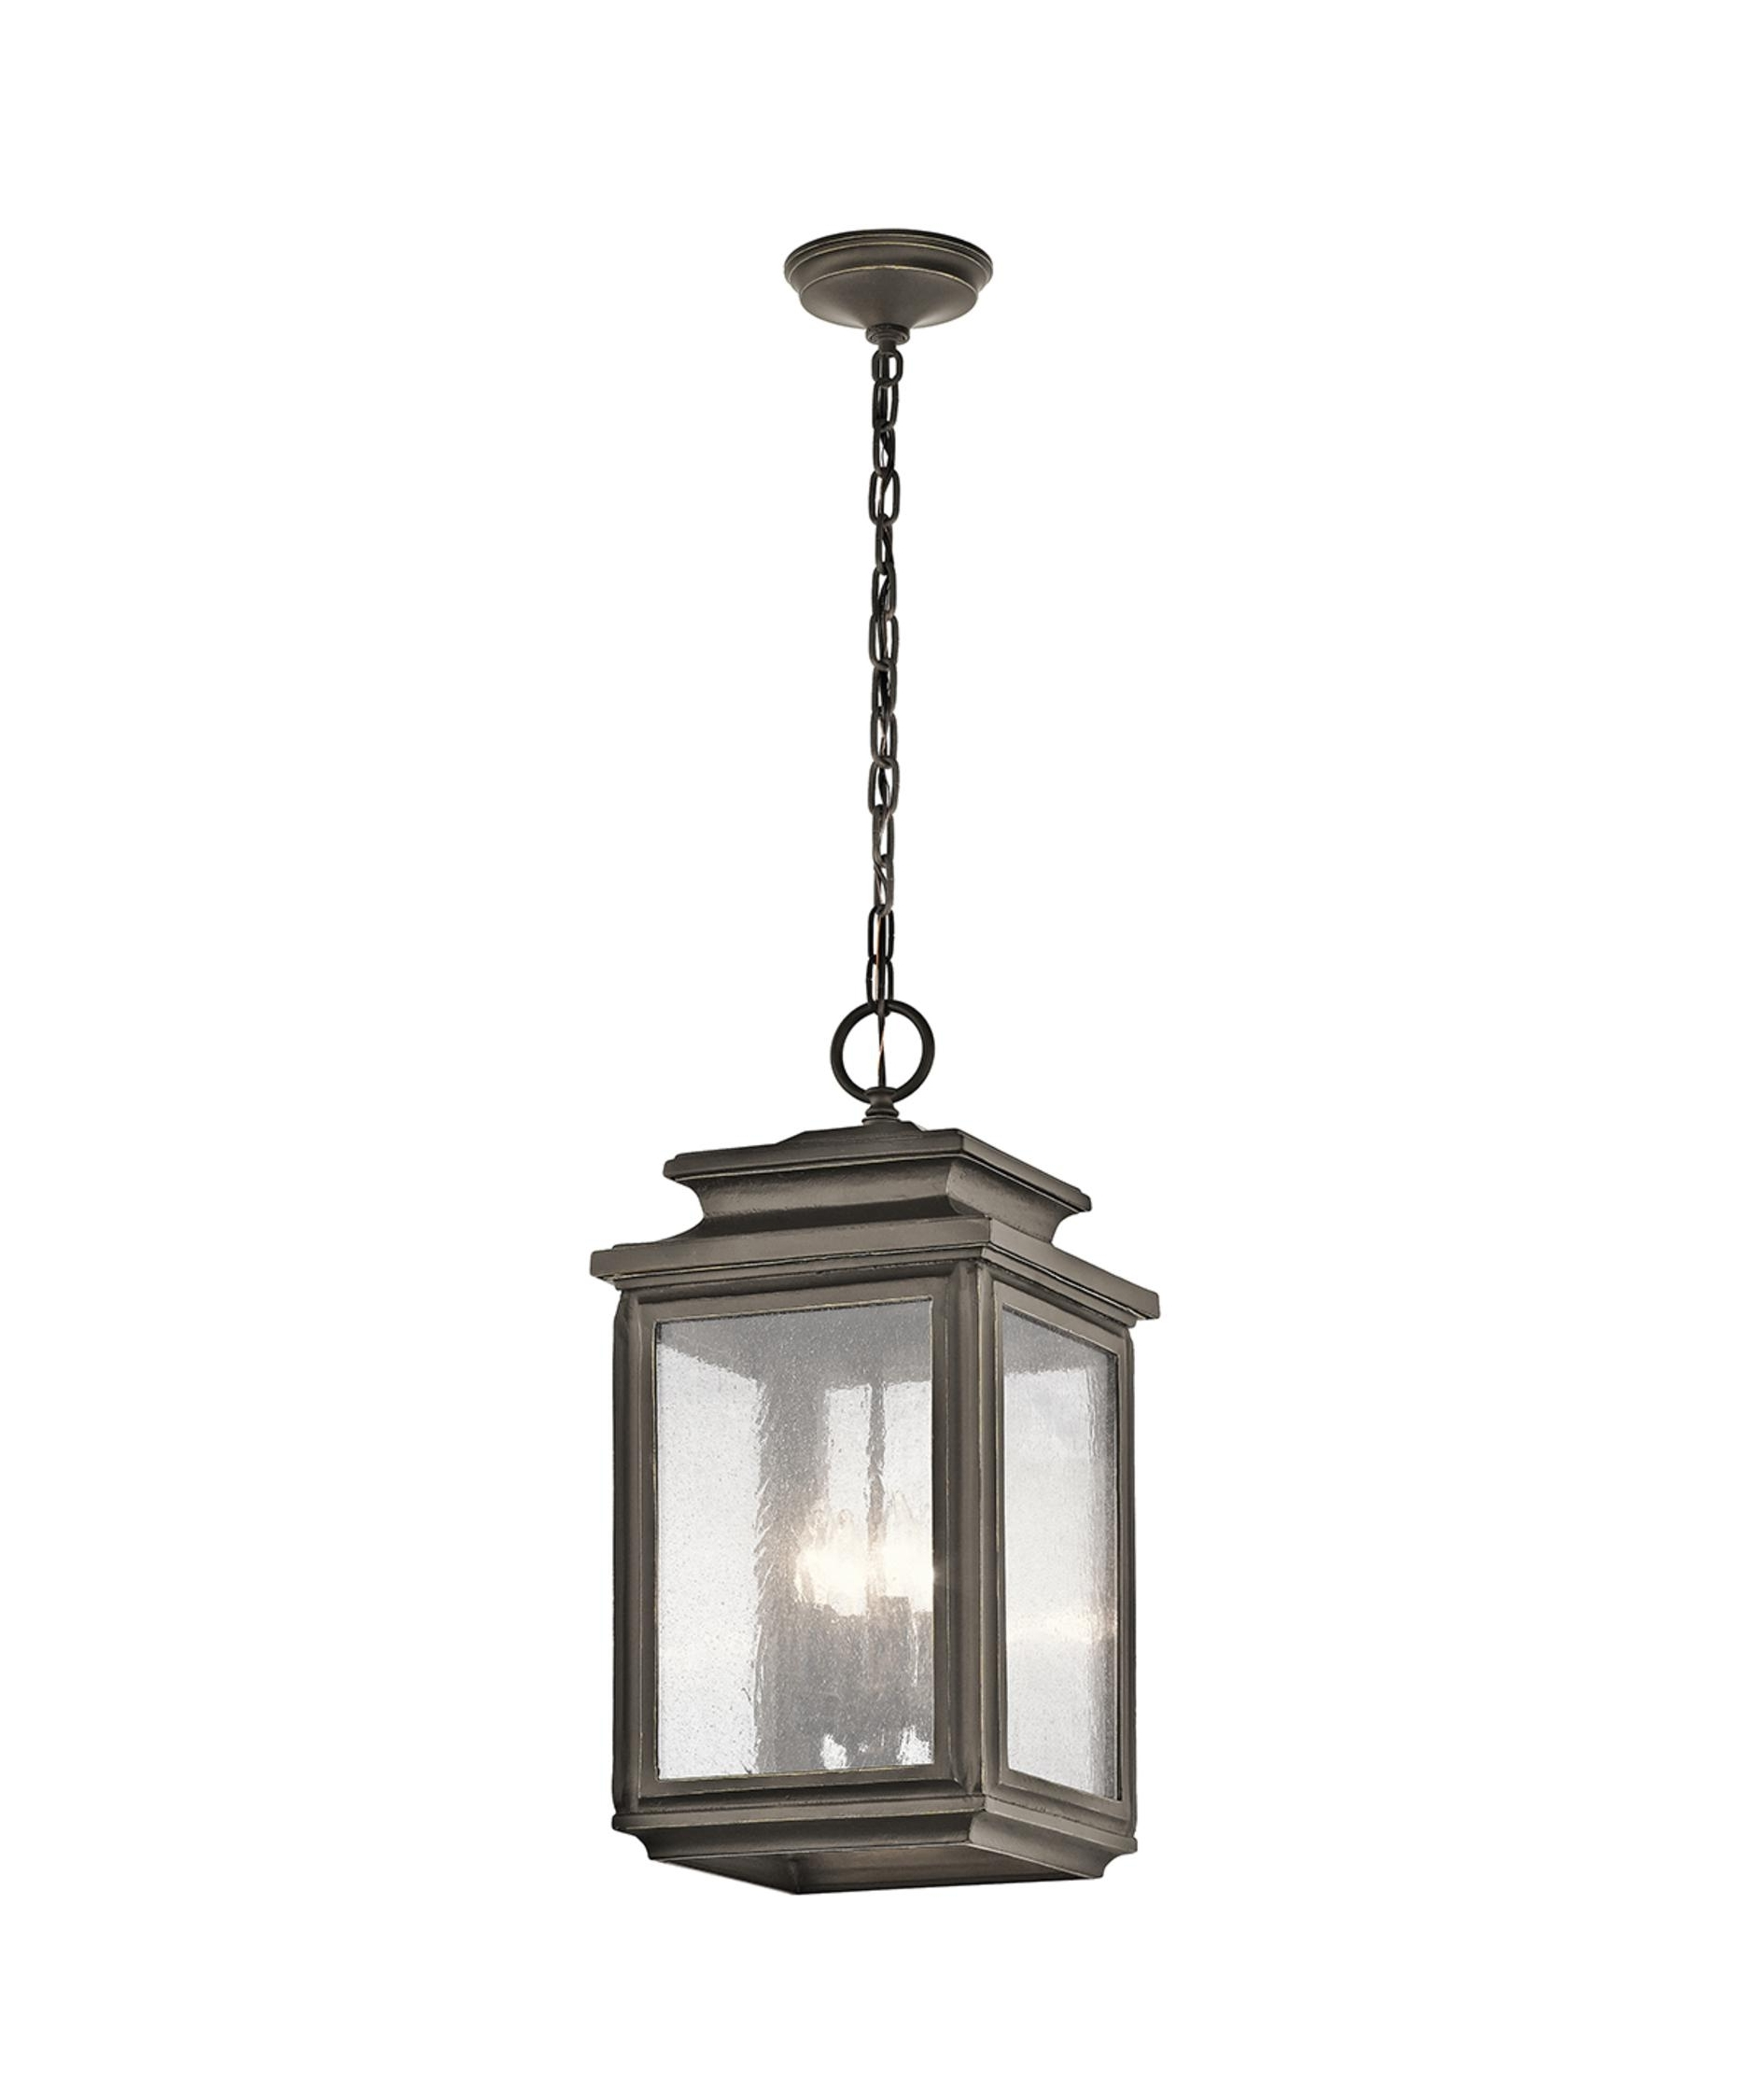 Kichler 49505 Wiscombe Park 11 Inch Wide 4 Light Outdoor Hanging Throughout Well Known Kichler Outdoor Lanterns (View 4 of 20)